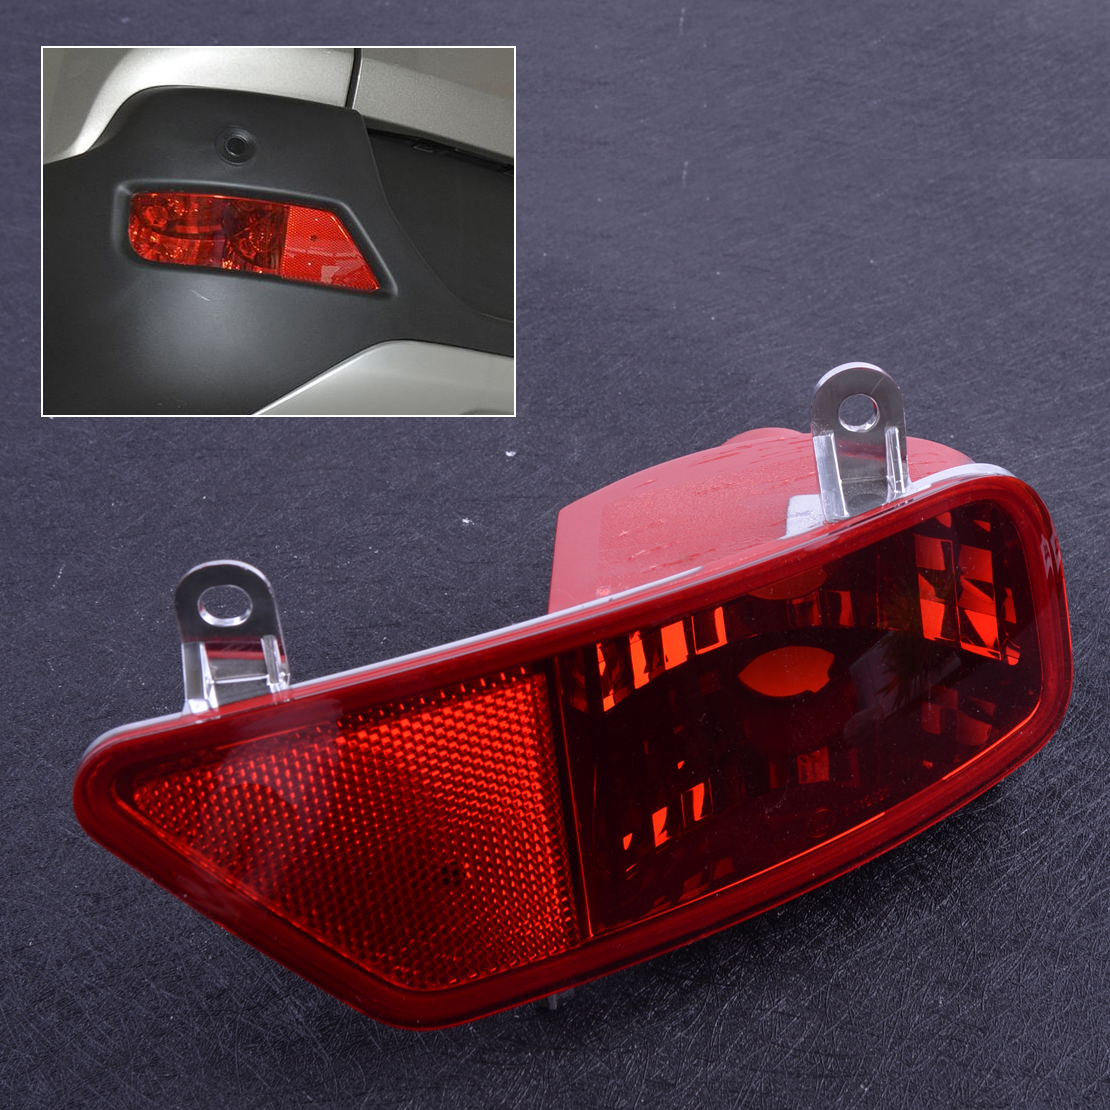 beler Bumper Left Rear Tail Fog Light Lamp Cover Case Shell Fit For Peugeot 3008 2009 2010 2011 2012 2013 2014 2015 image